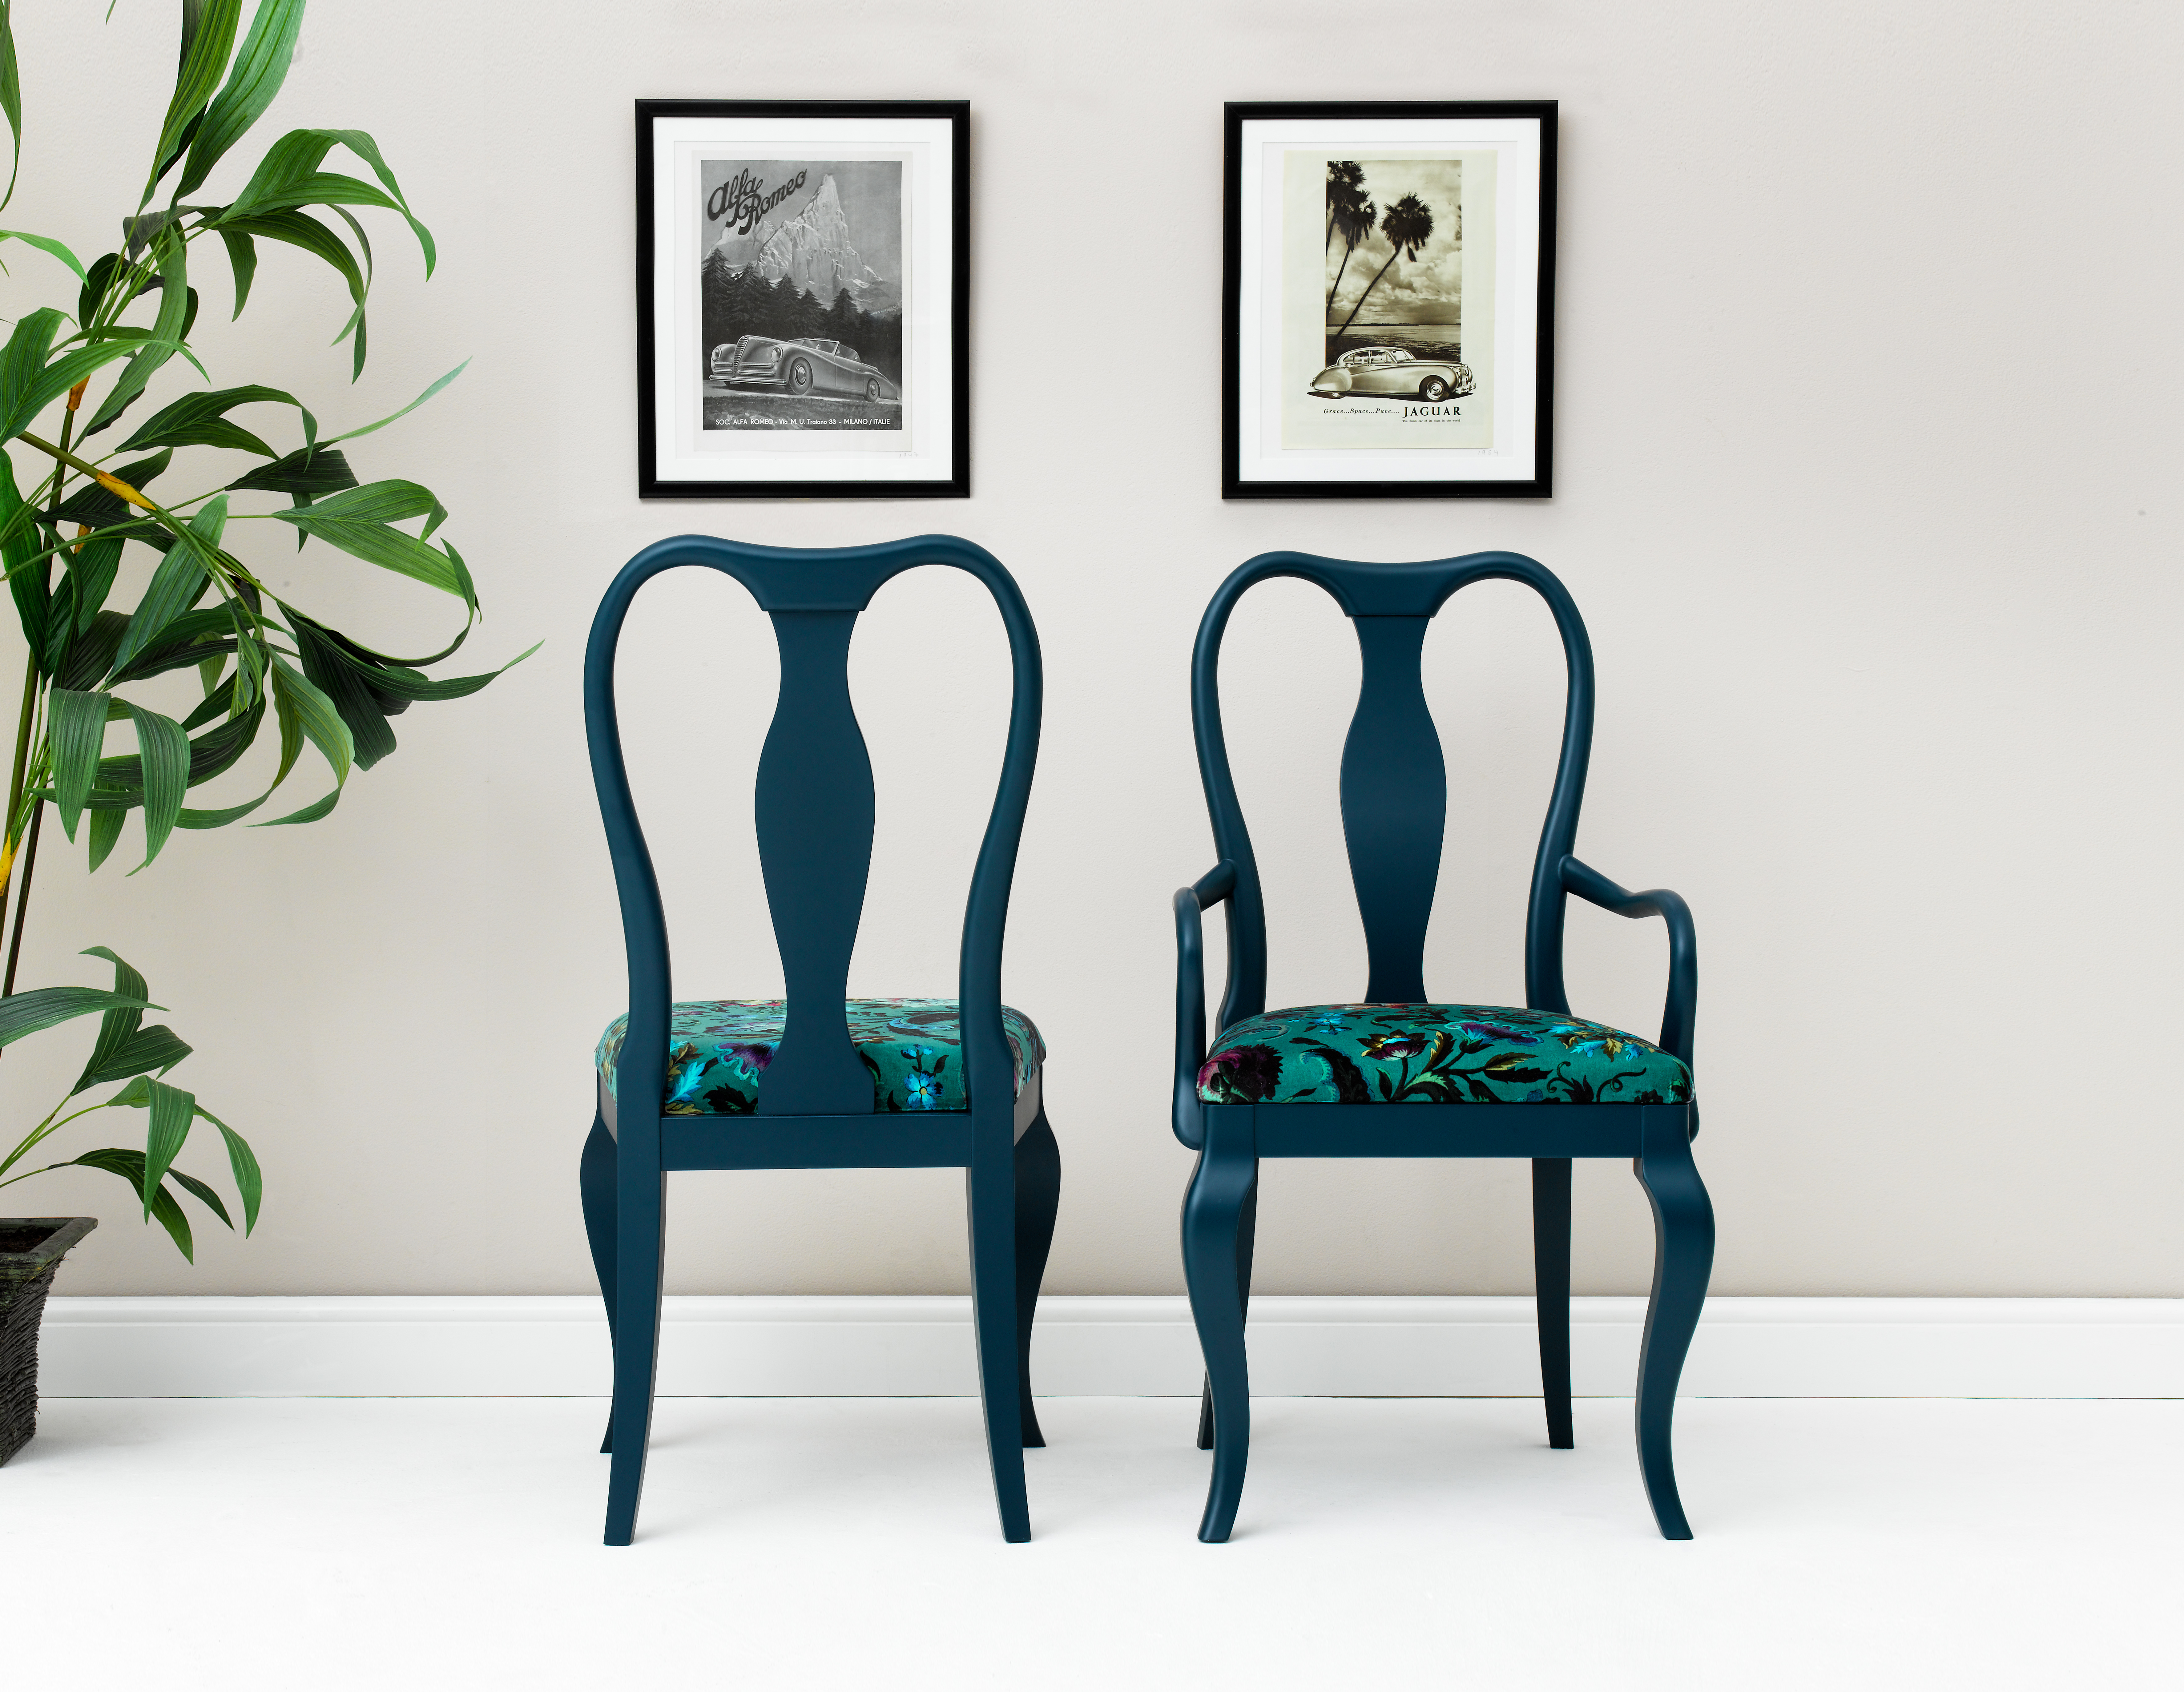 Cheeky chairs, great for styling photoshoots